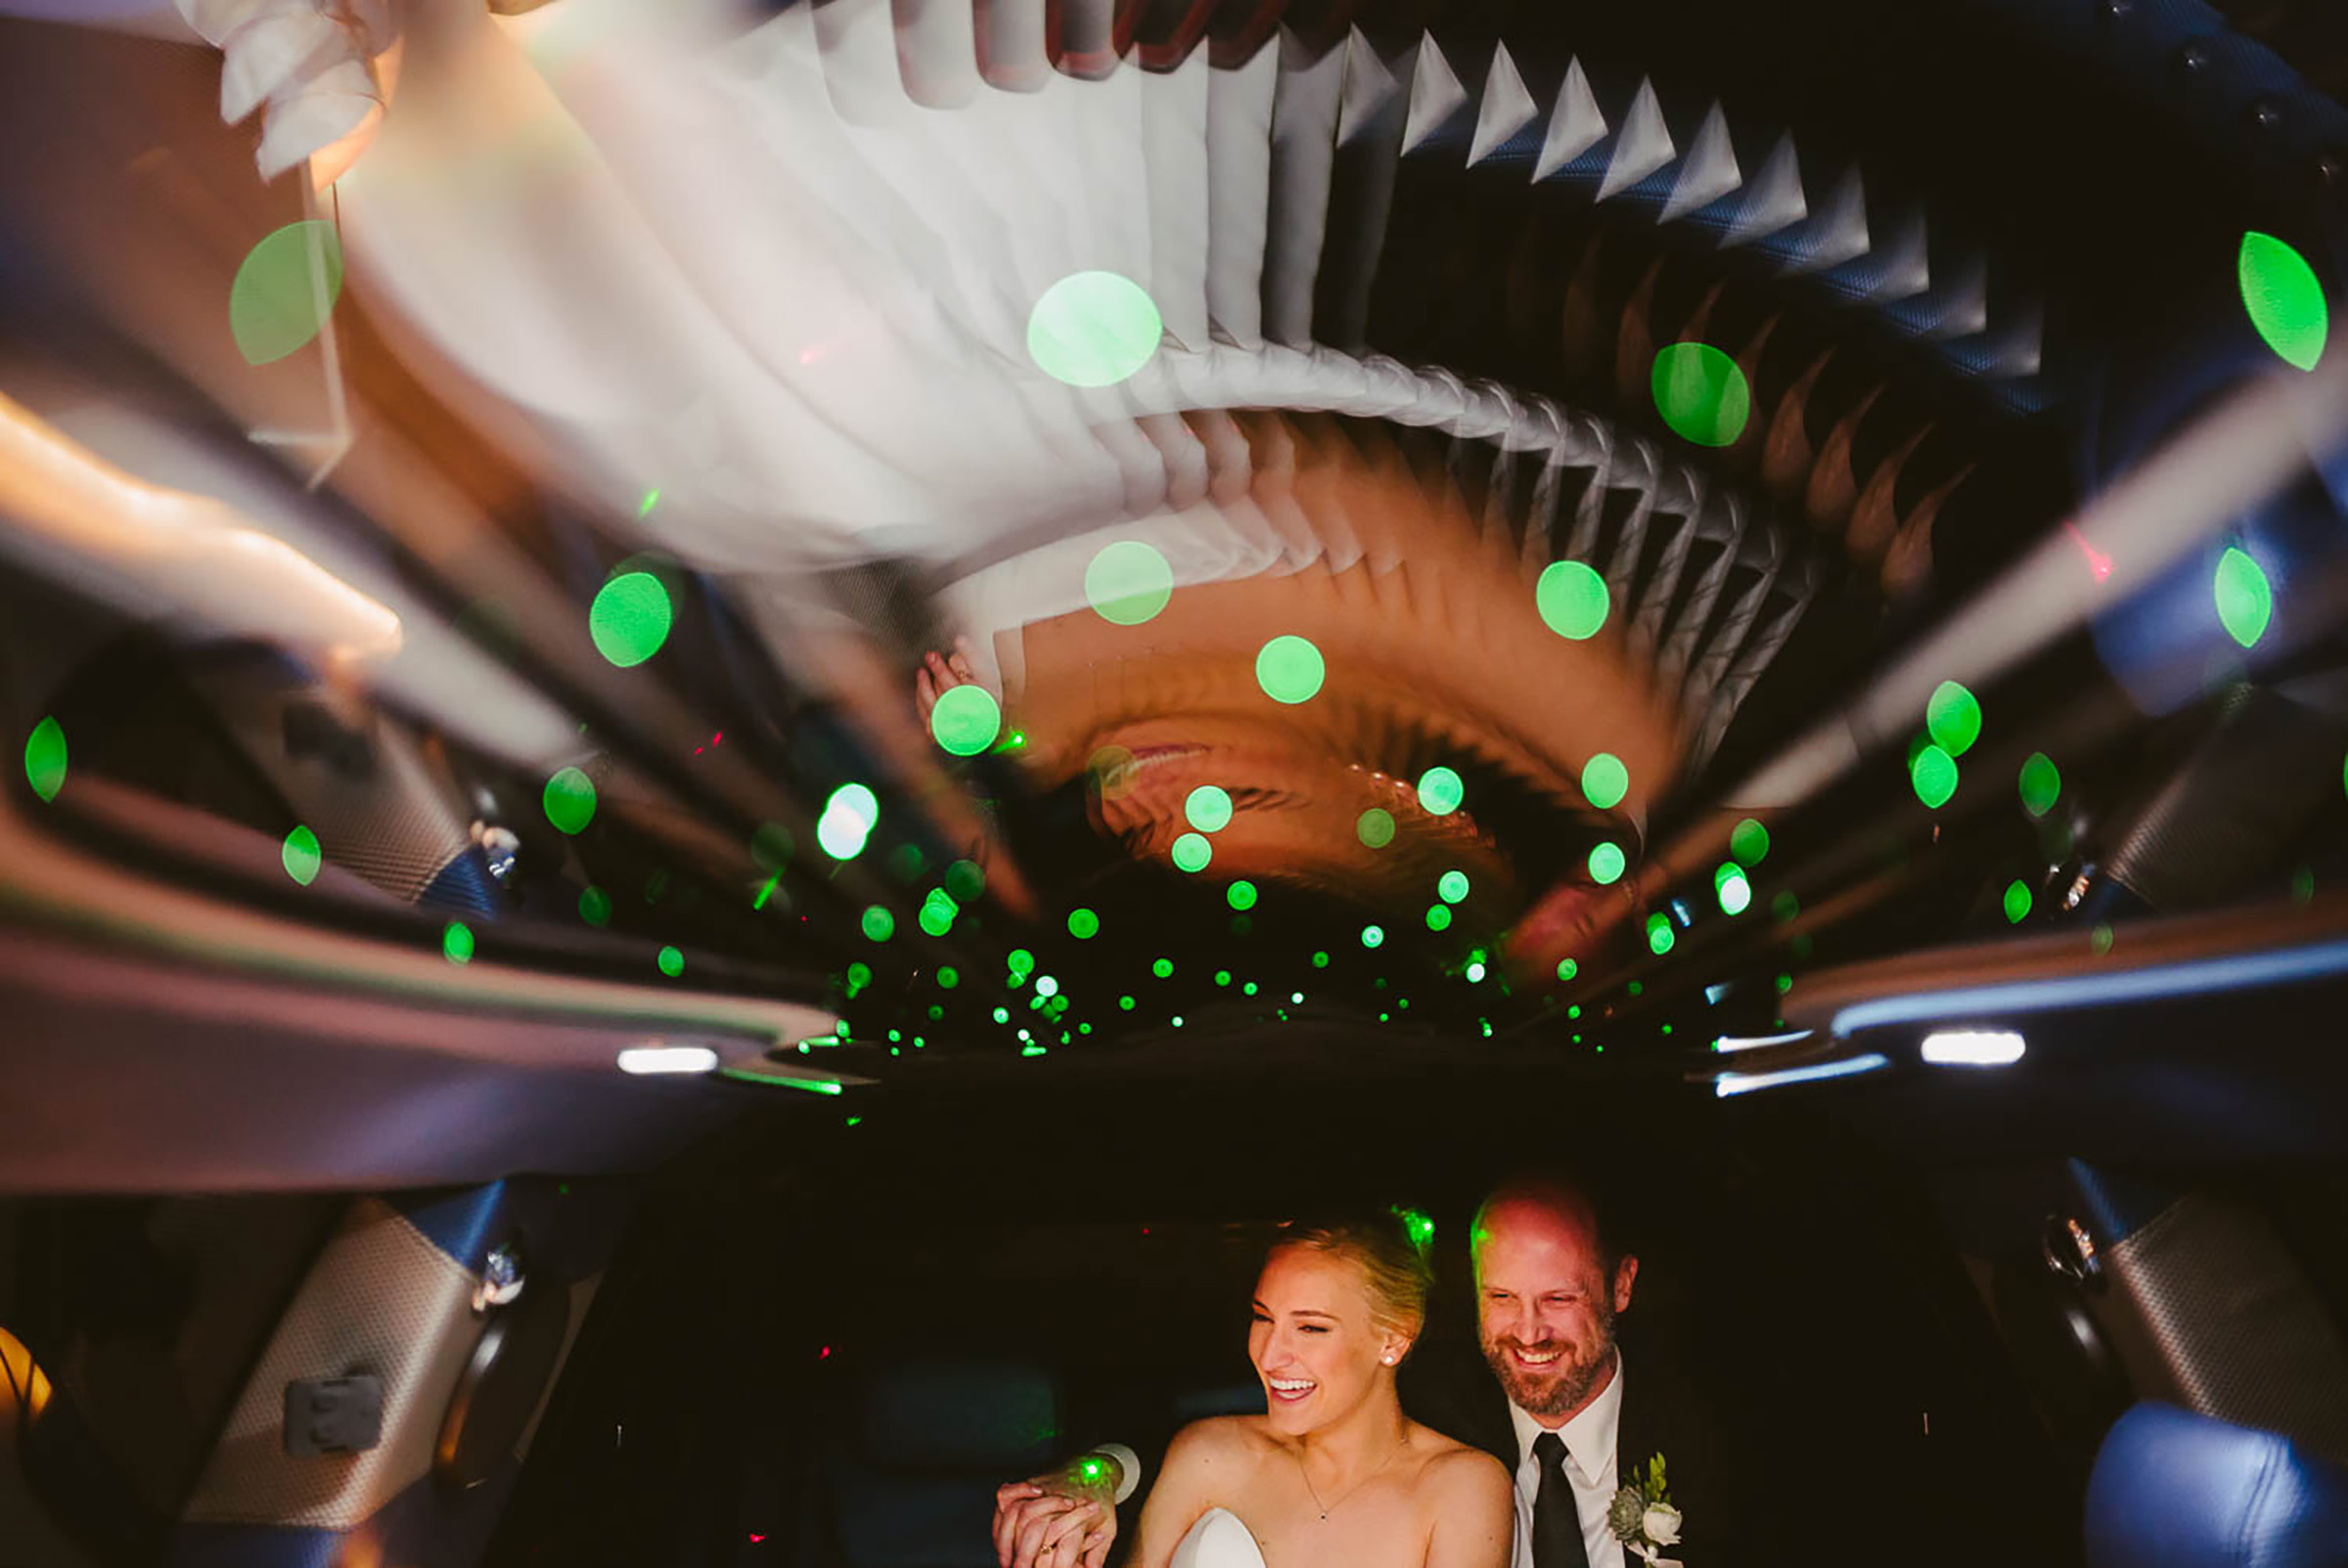 bride-and-groom-in-limousine-first-united-church-wedding-houston-texas-by-philip-thomas-photography